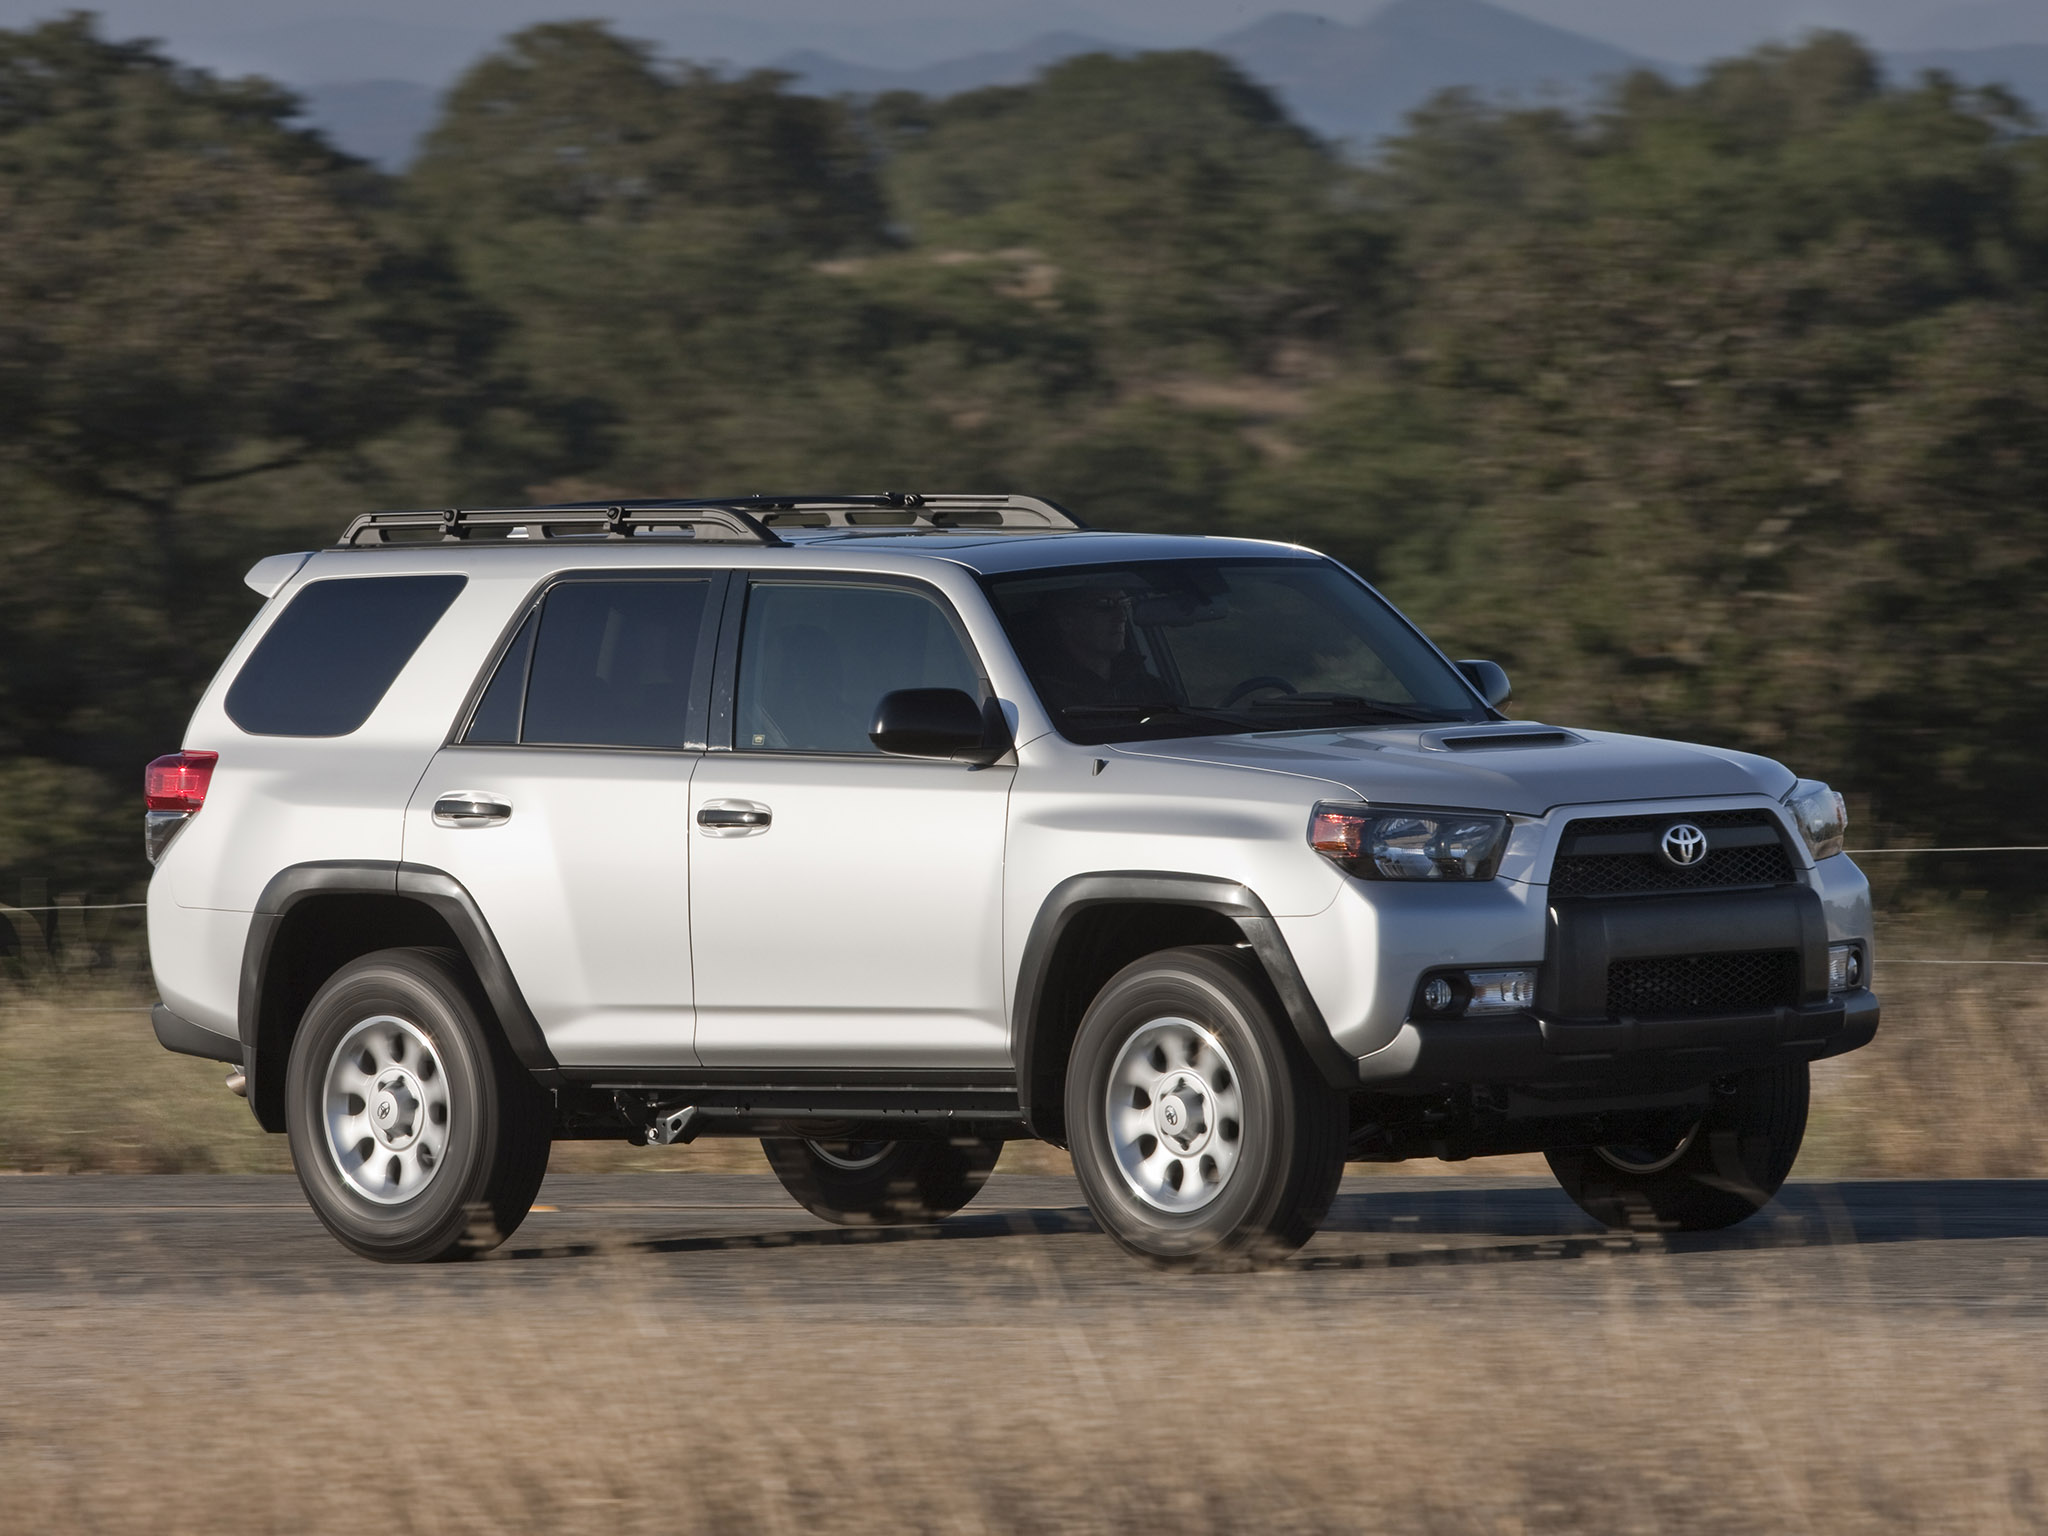 toyota 4runner trail 2010 toyota 4runner trail 2010 photo 03 car in pictures car photo gallery. Black Bedroom Furniture Sets. Home Design Ideas